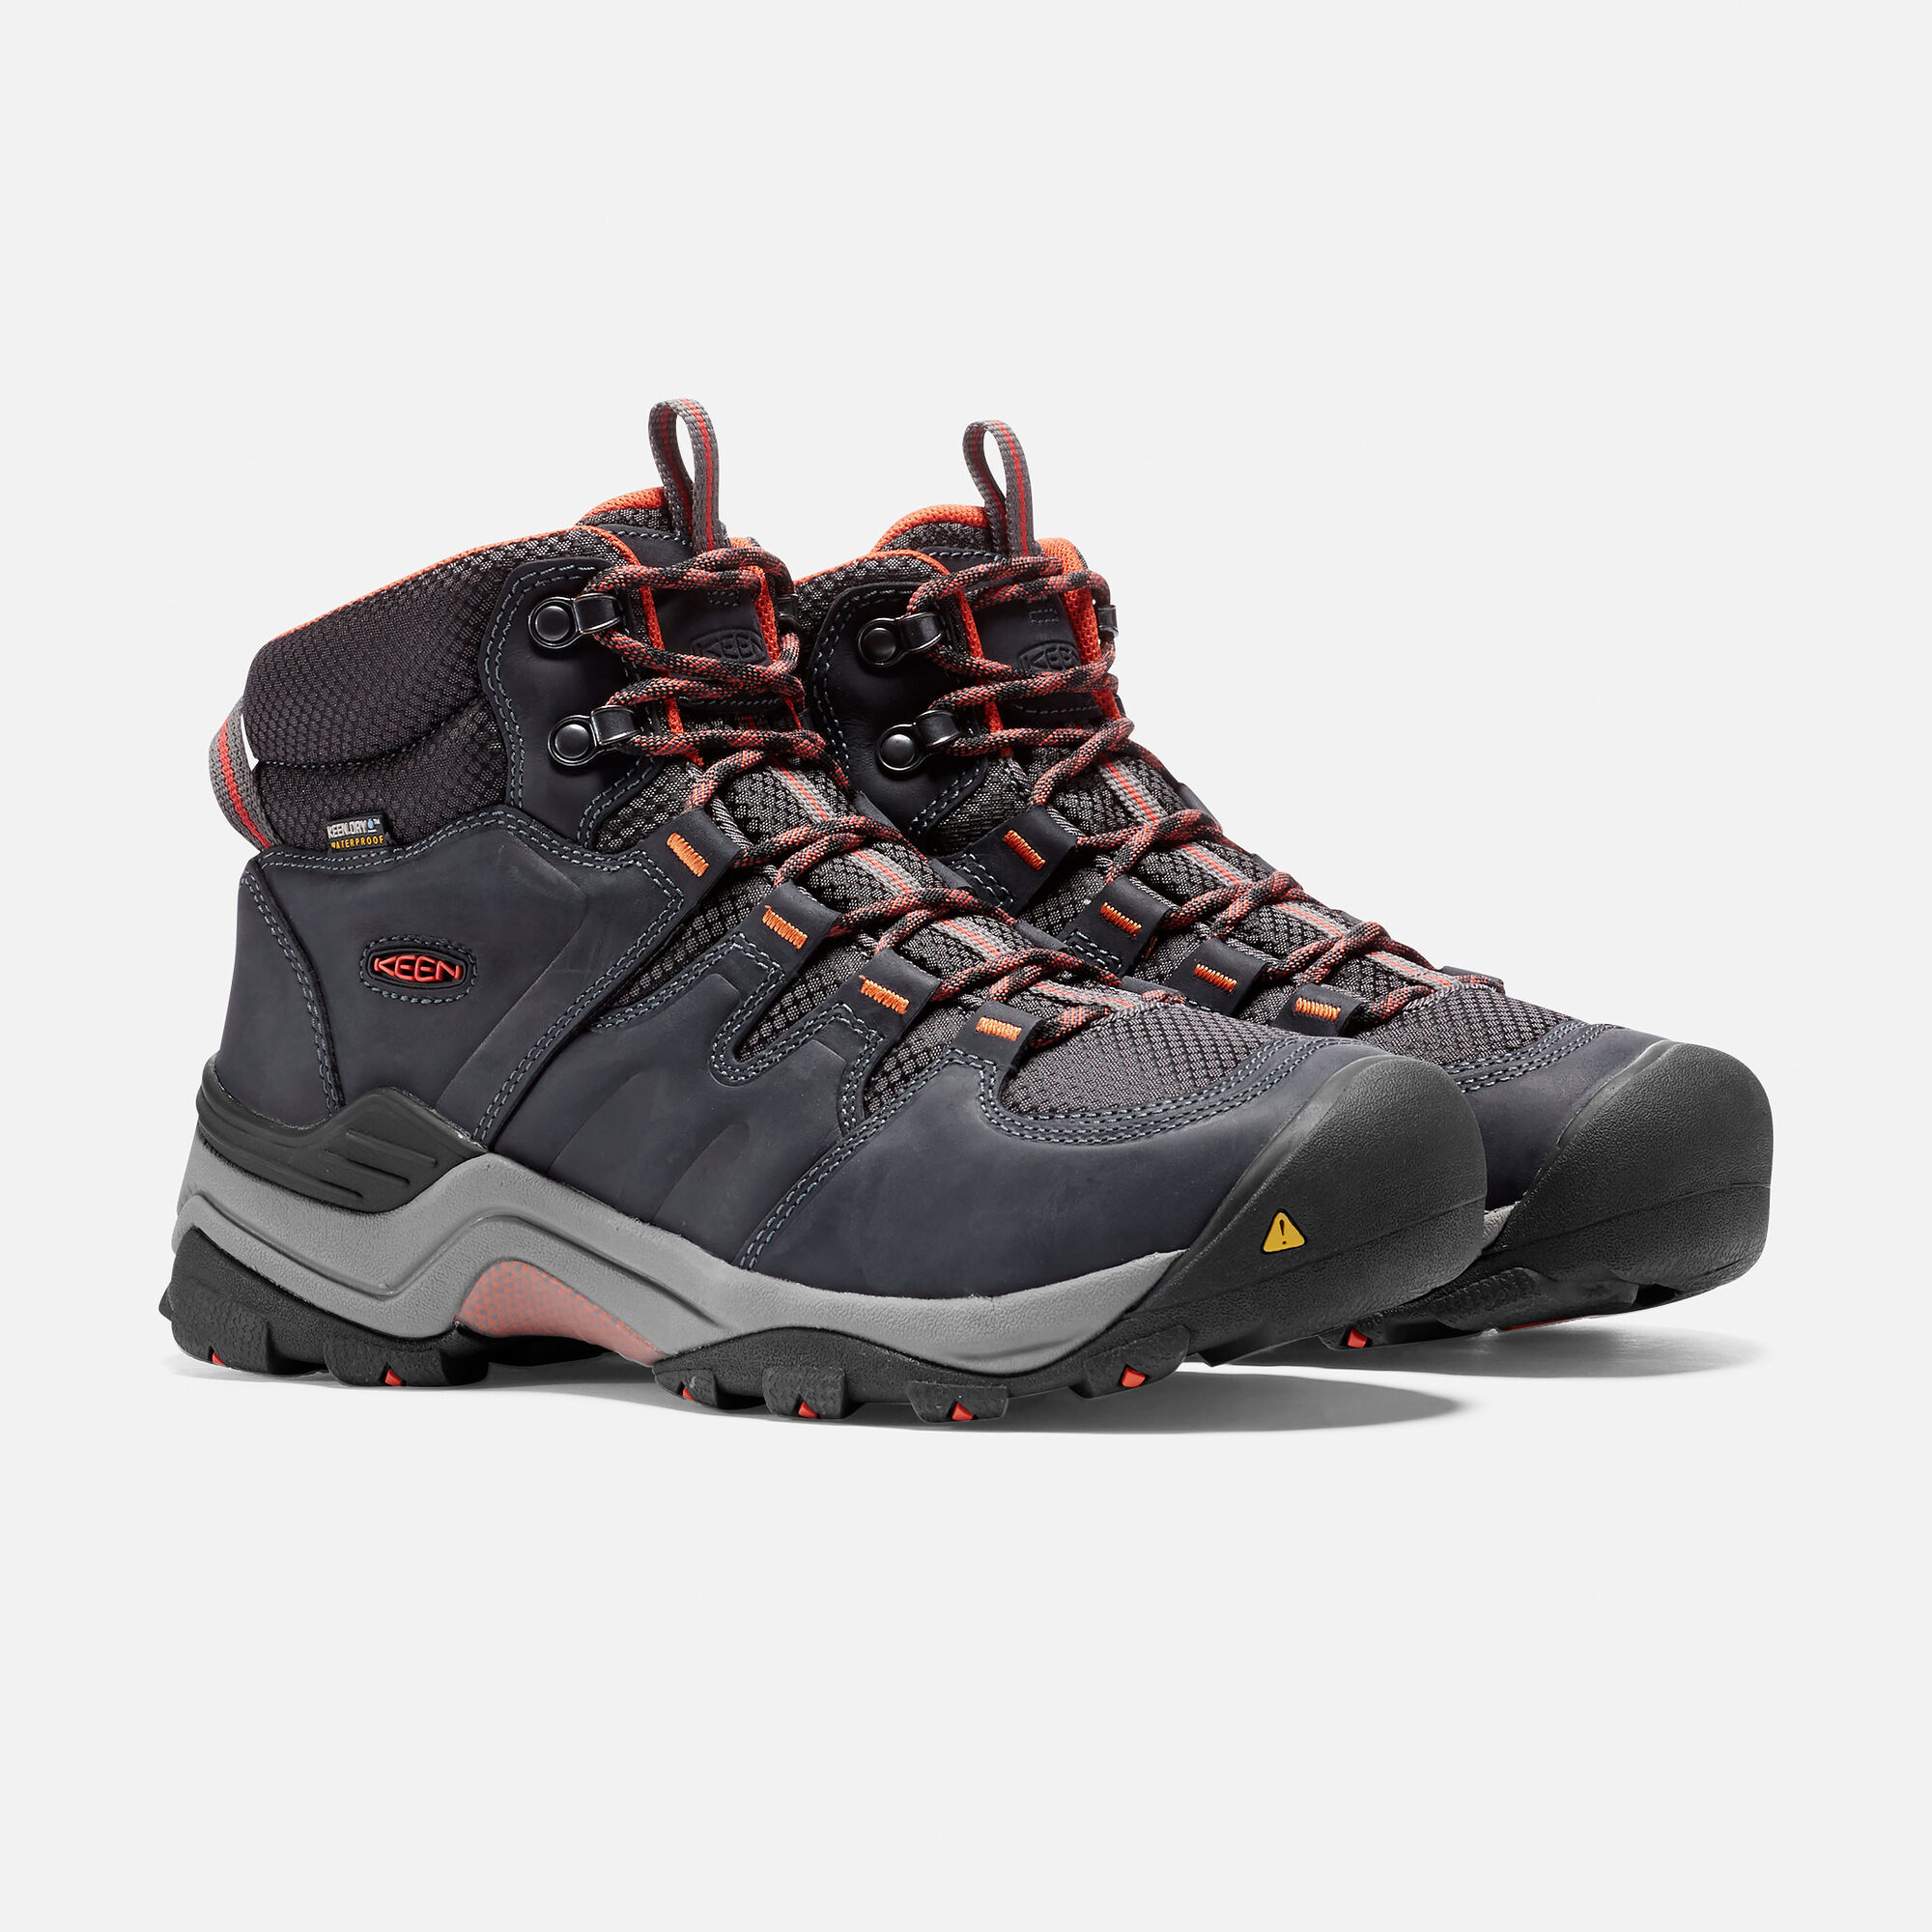 Men's Gypsum II Waterproof Mid | KEEN Footwear